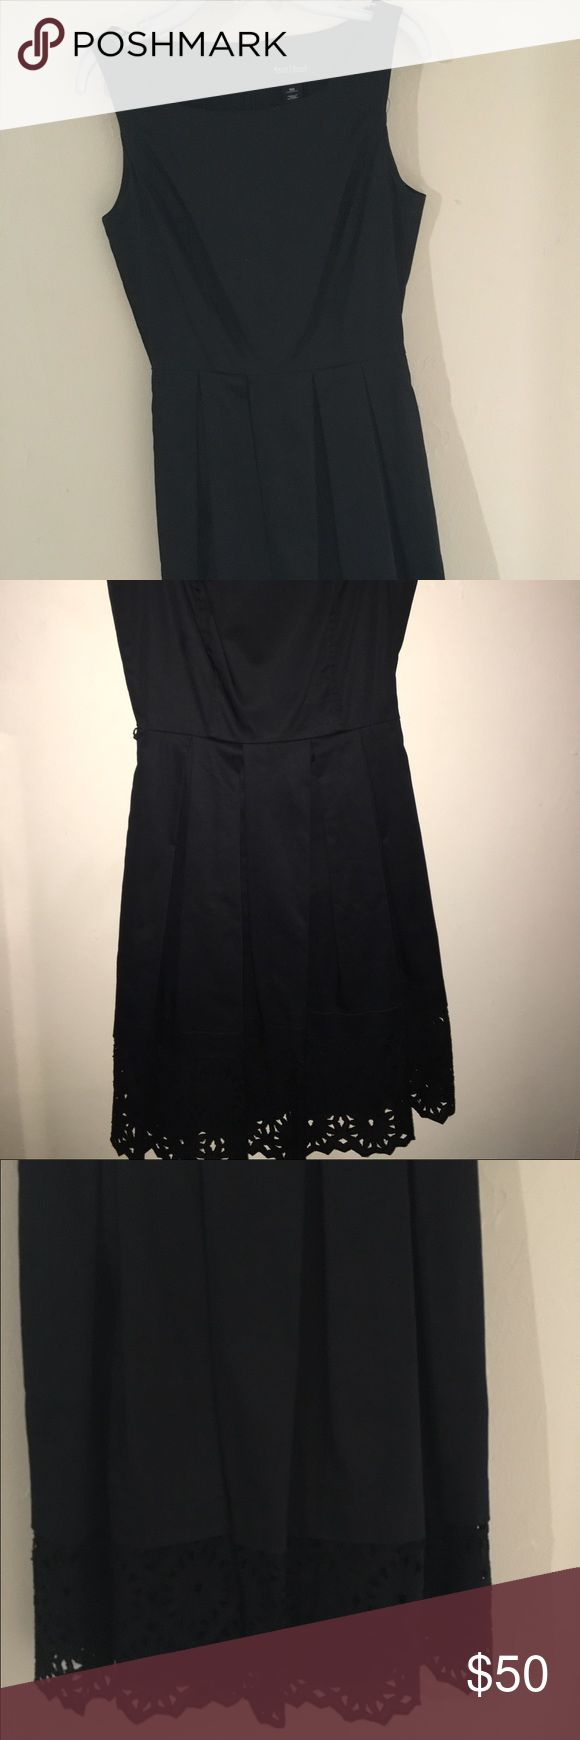 Dress Petite black dress, only worn once, in great condition. White House Black Market Dresses